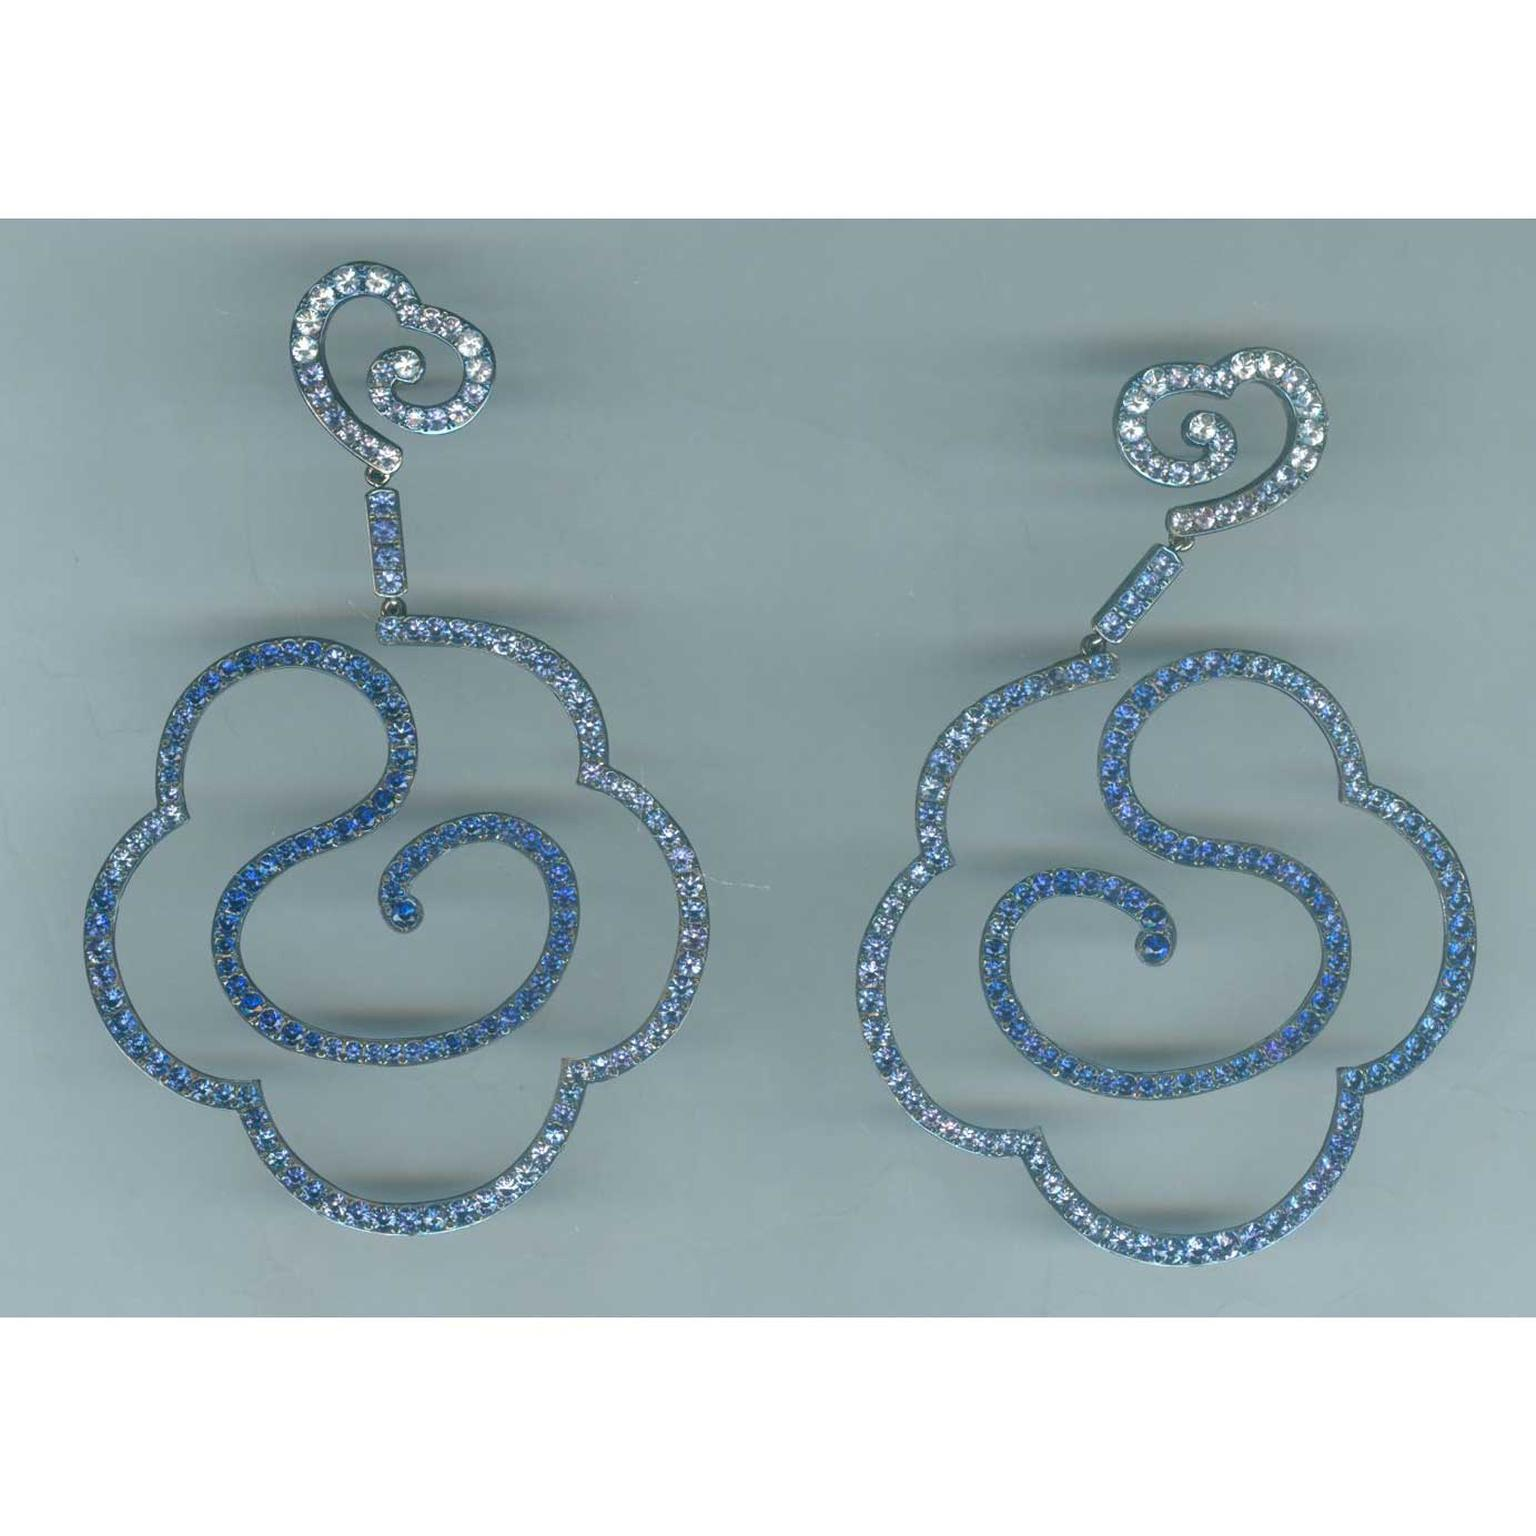 Carnet sapphire and diamond cloud earrings